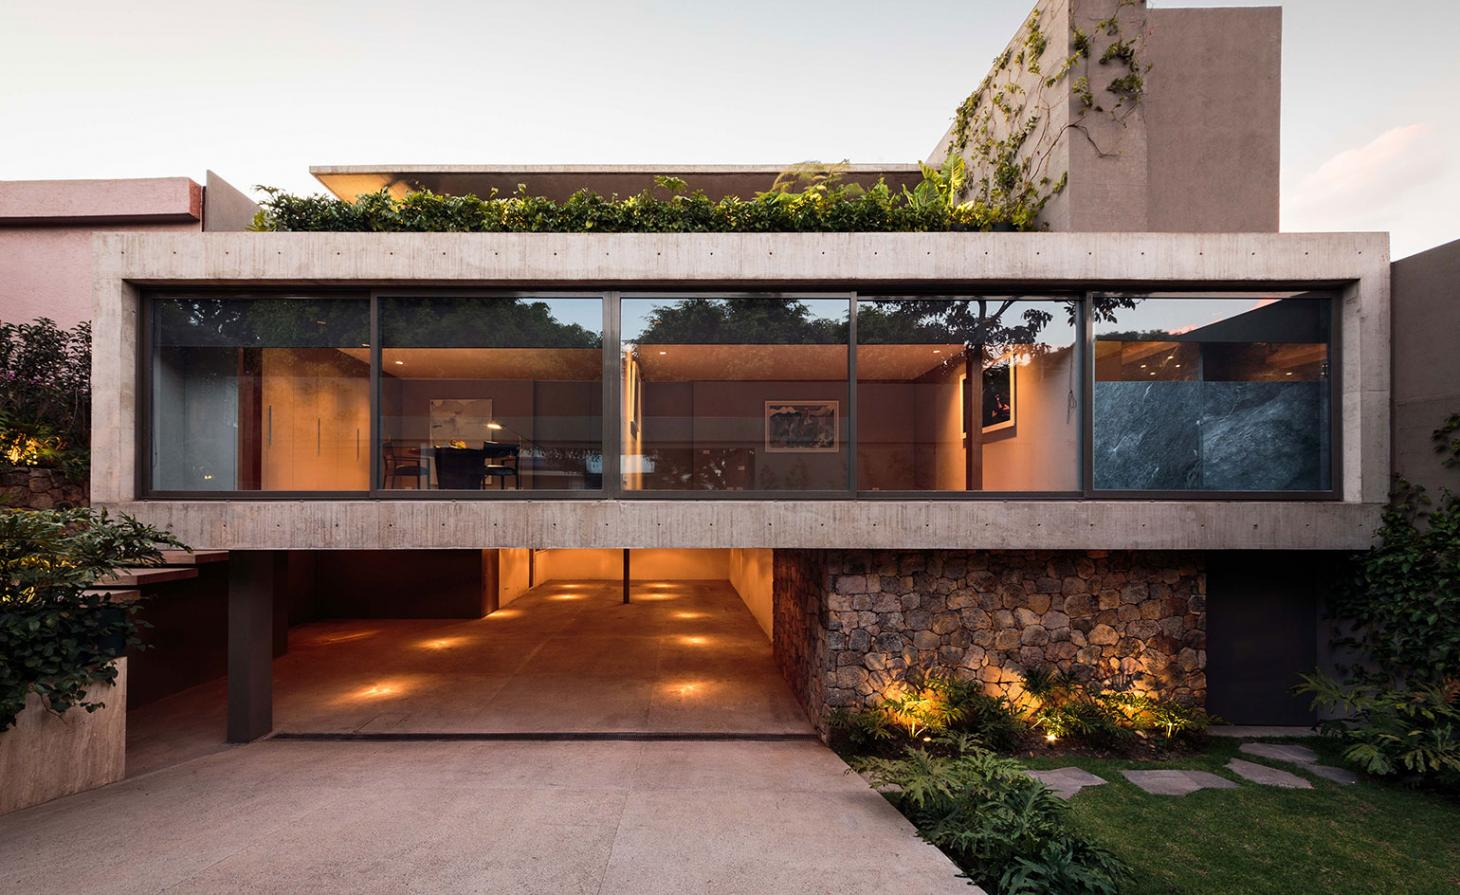 An architect's home in Mexico City melds strong geometry with a warm interior